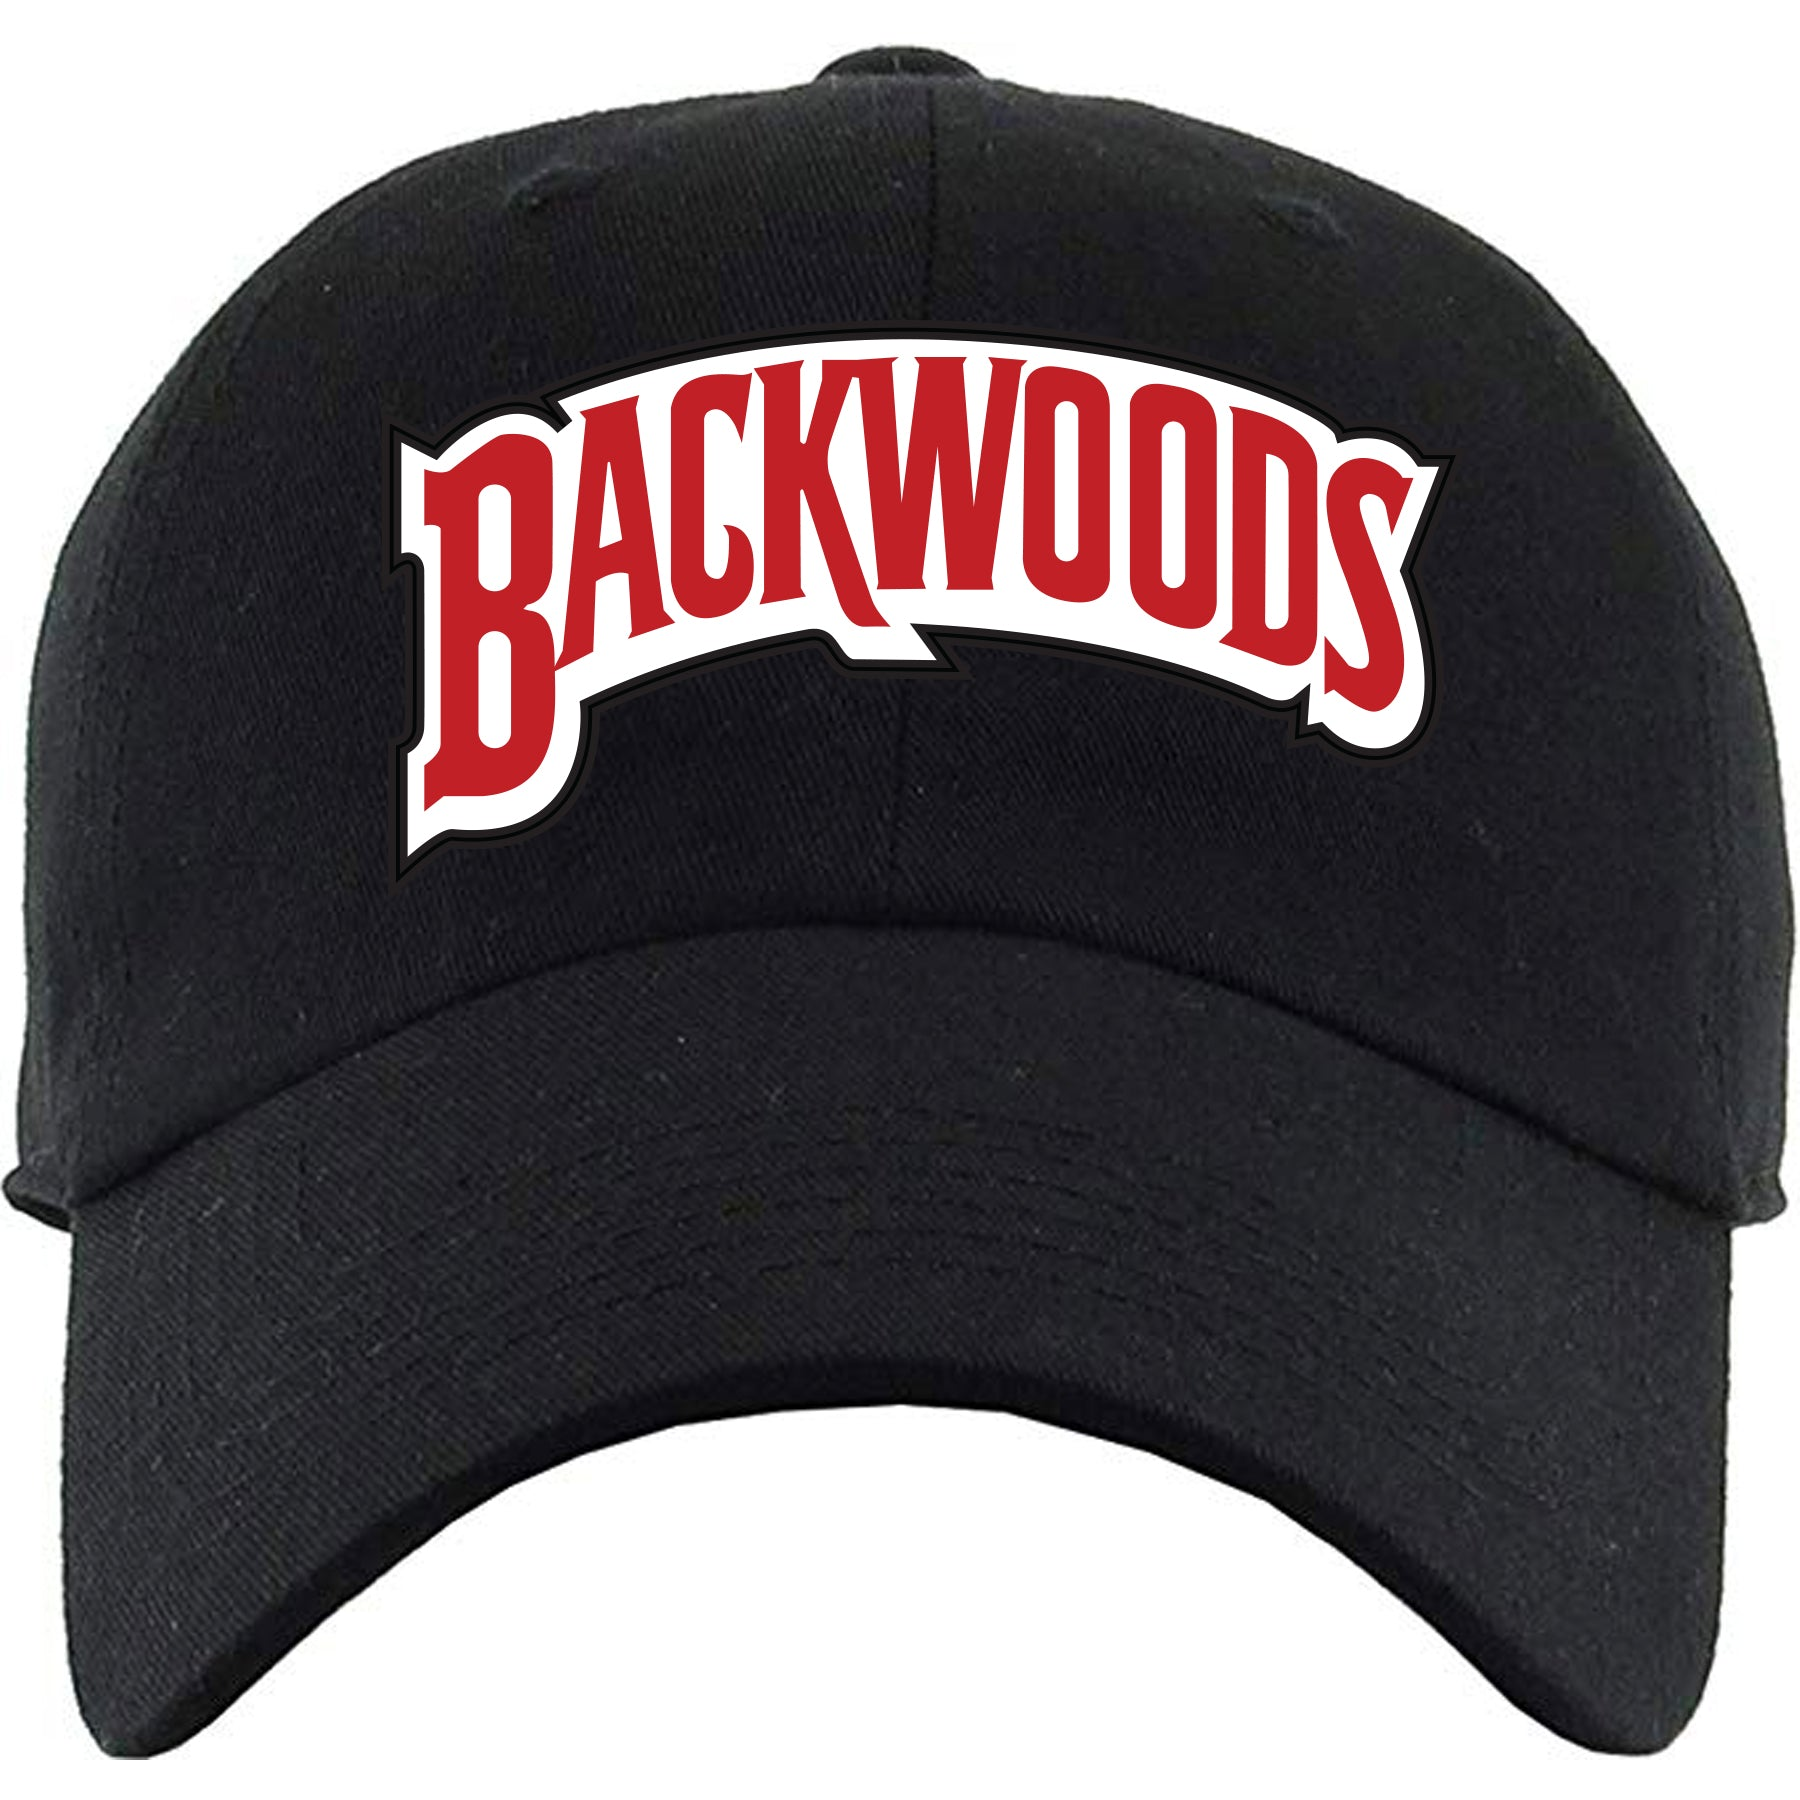 8696d21c9a31 ... Jordan 12 Chinese New Year Sneaker Matching Backwoods Black Dad hat ...